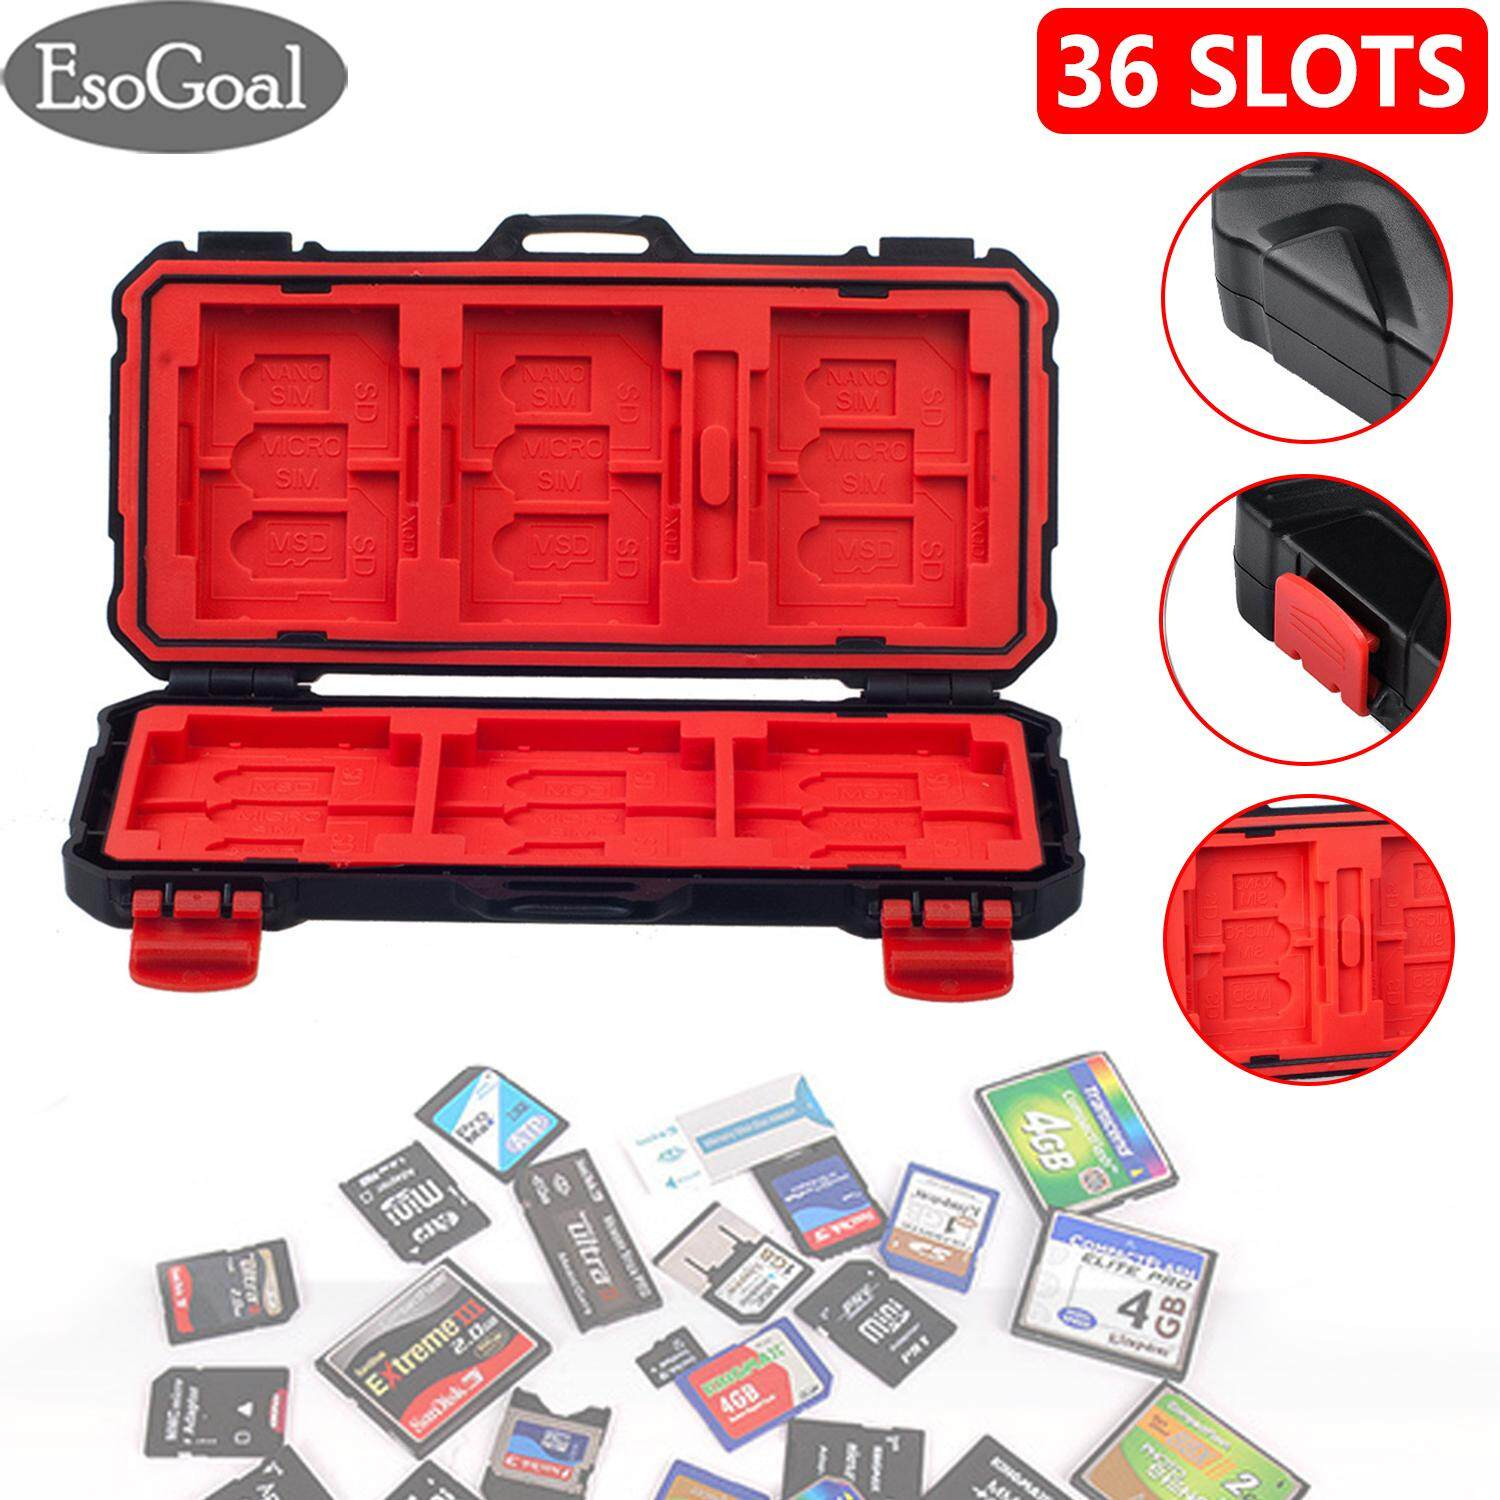 EsoGoal Memory Card Case SD Card Storage Box Protection Micro SD Card Holder Waterproof Shockproof TF SD CF Card Carrying Case Storage Box(36 Slots)